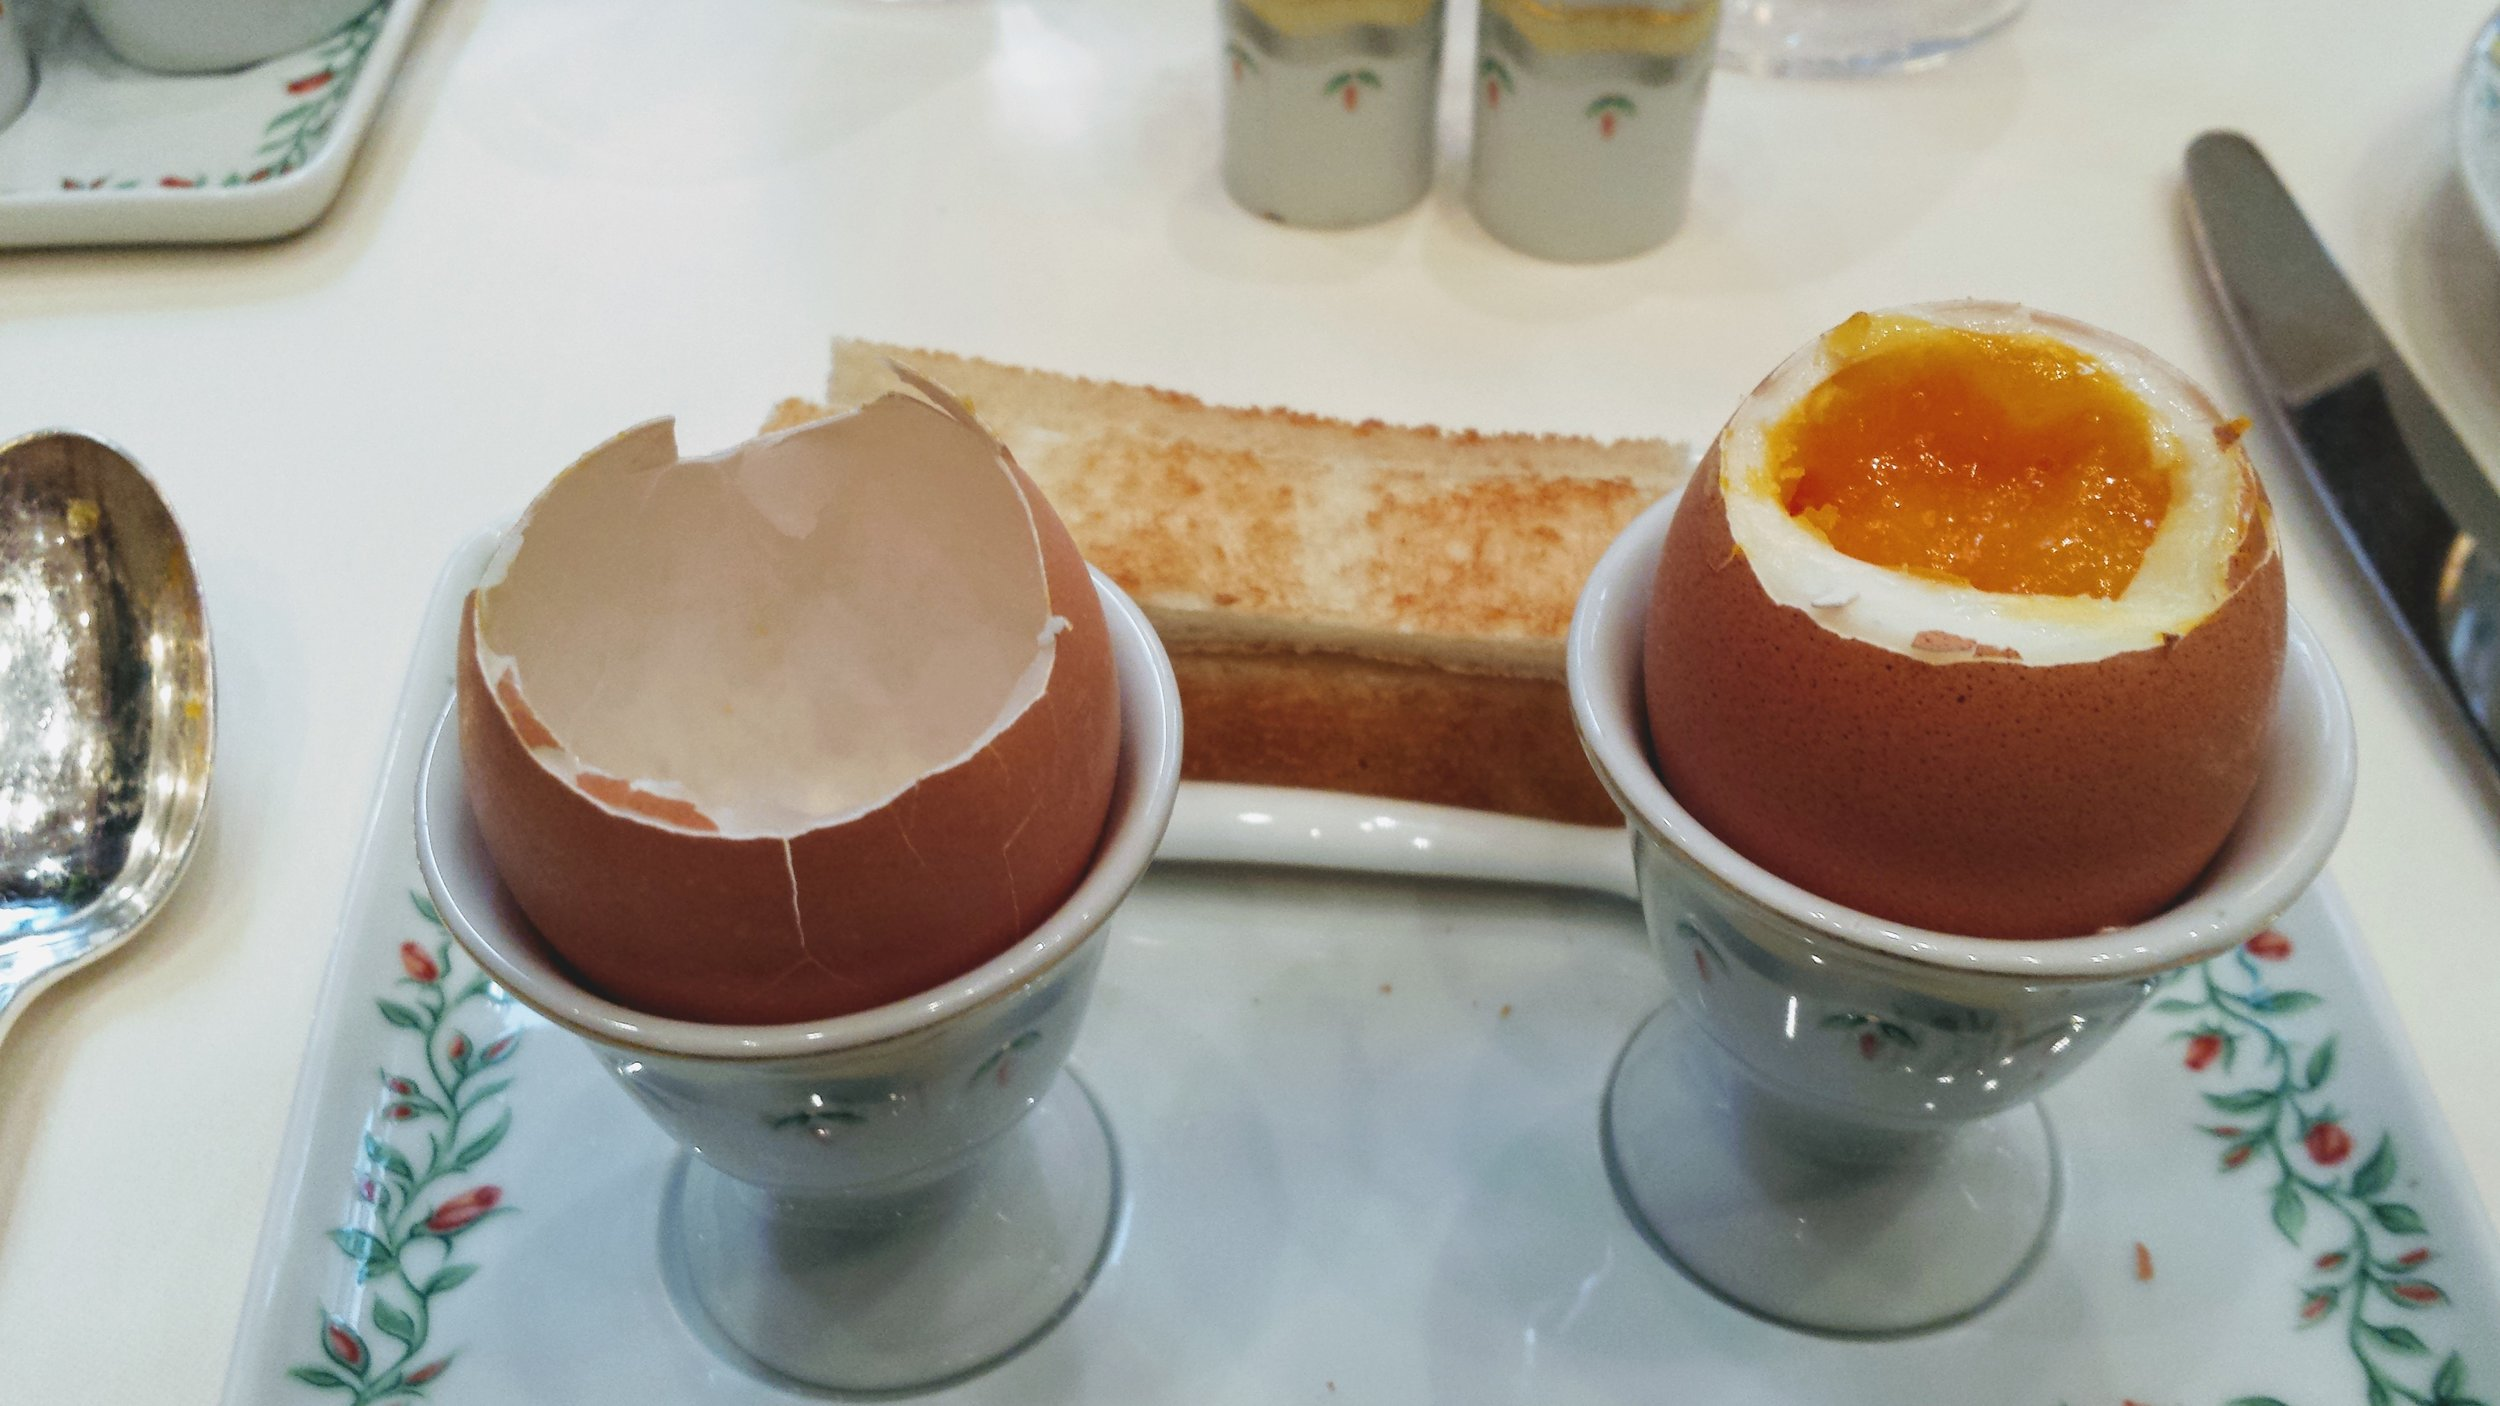 boiled eggs the way you like them - there is hardly a recipe or dish that can't be enhanced with a well cooked egg.